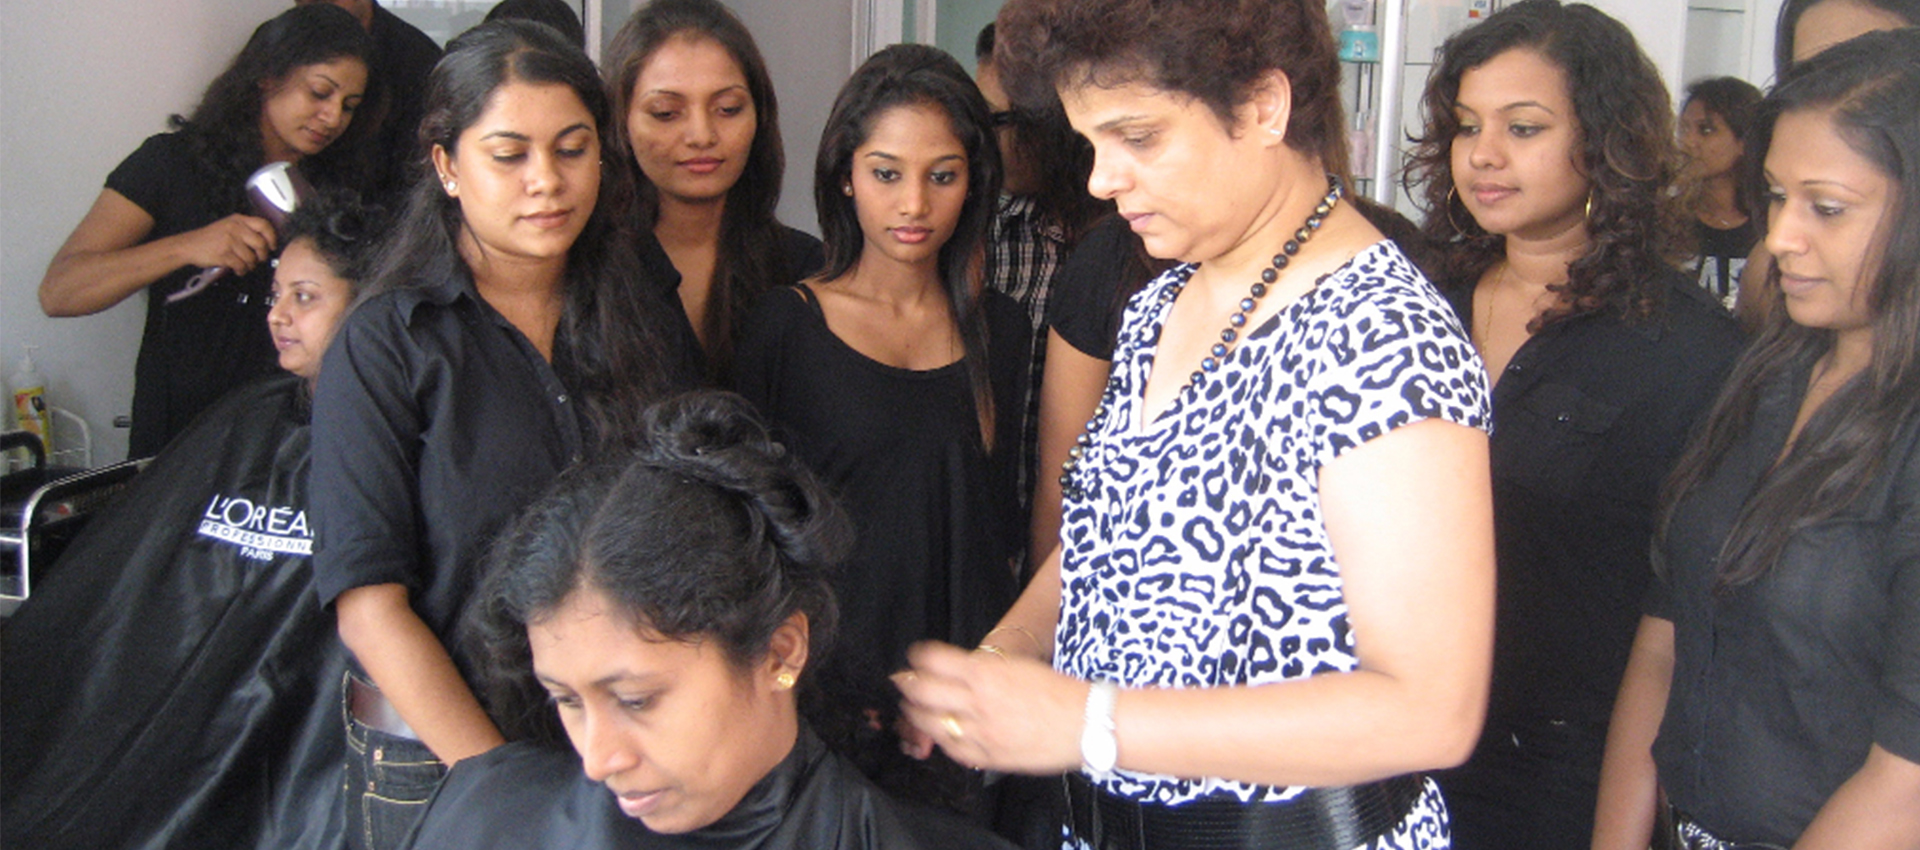 Yesman.lk - Cover Image - Roots Hair & Beauty Academy